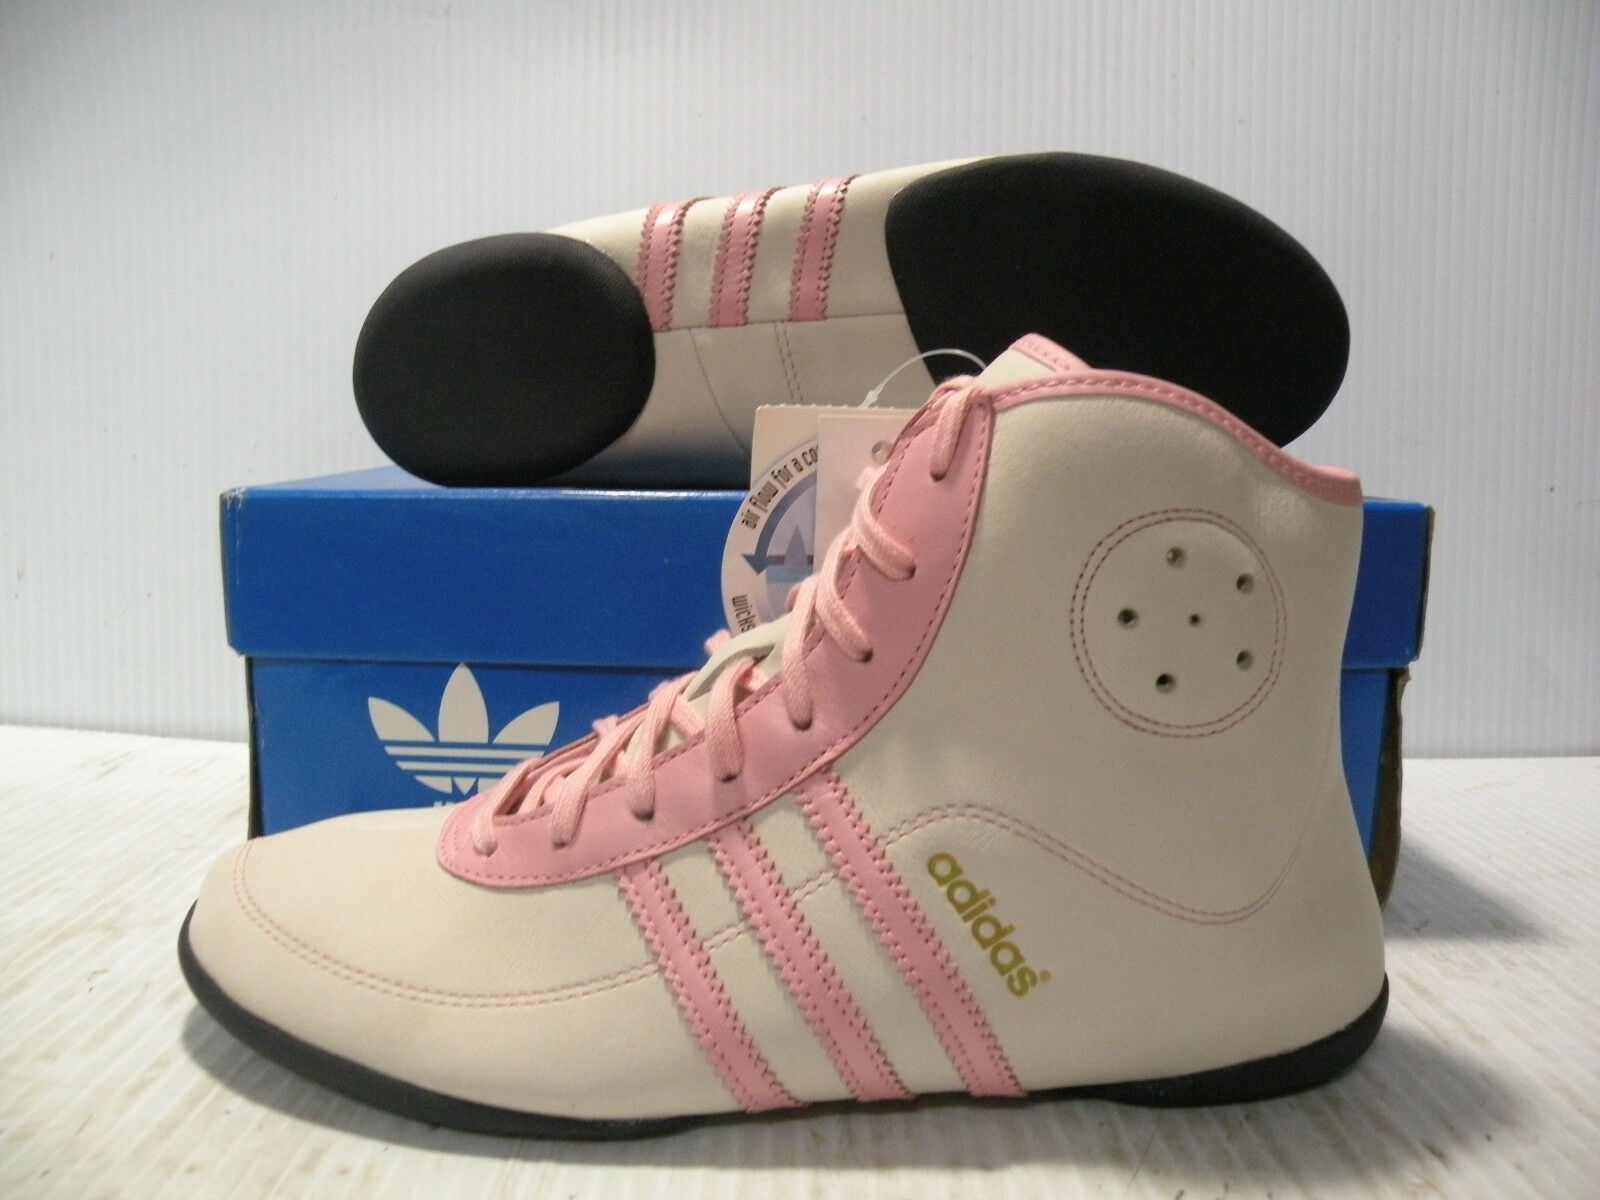 ADIDAS MARY JANE MID SNEAKERS WOMEN SHOES WHITE PINK 549437 SIZE 8.5 NEW